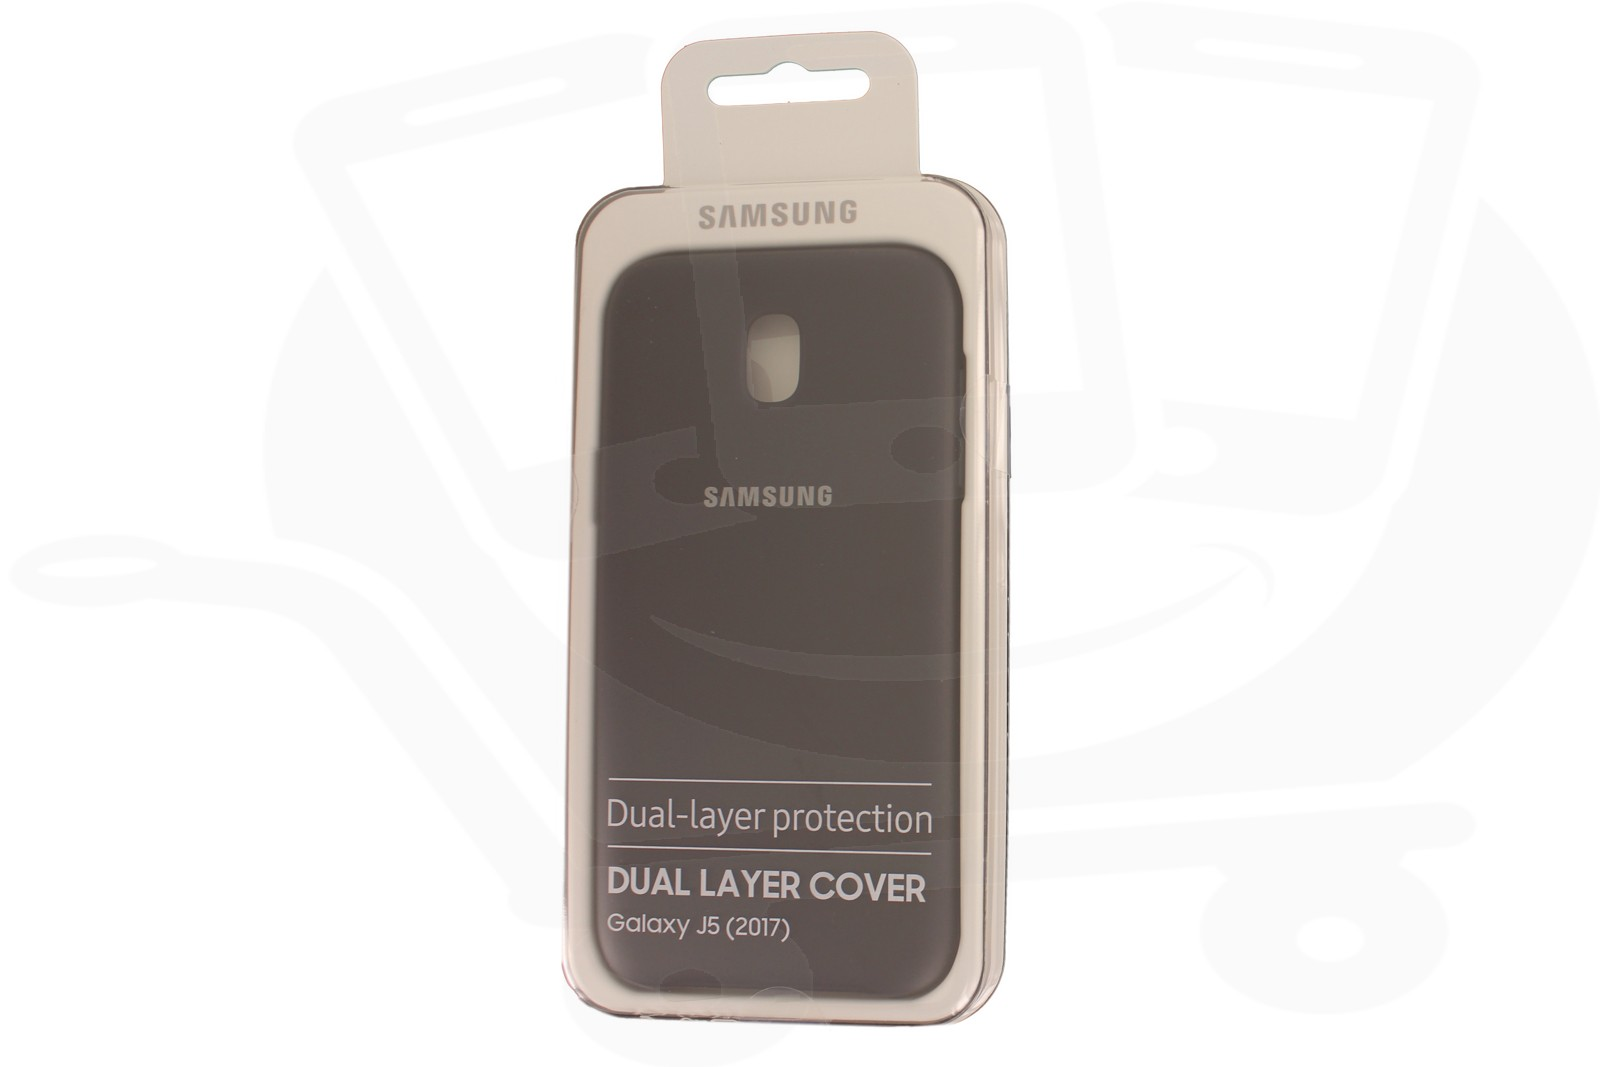 custodia originale samsung galaxy j5 2017 dual layer